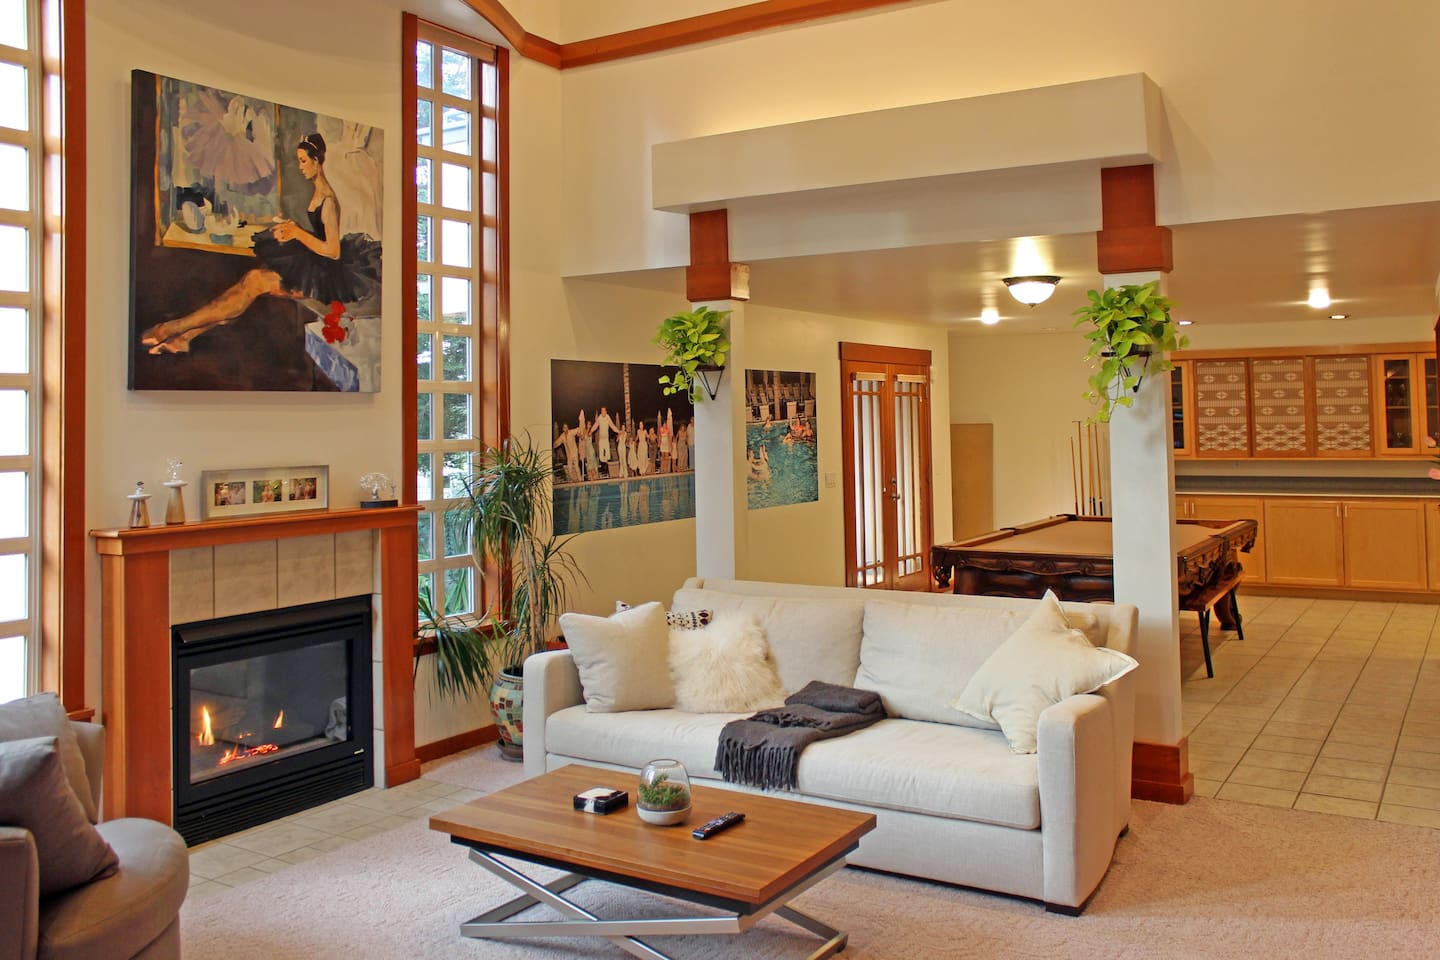 Spacious living room with vaulted ceilings, uplighting, fireplace, ultra-deep sofa and convertible dining table